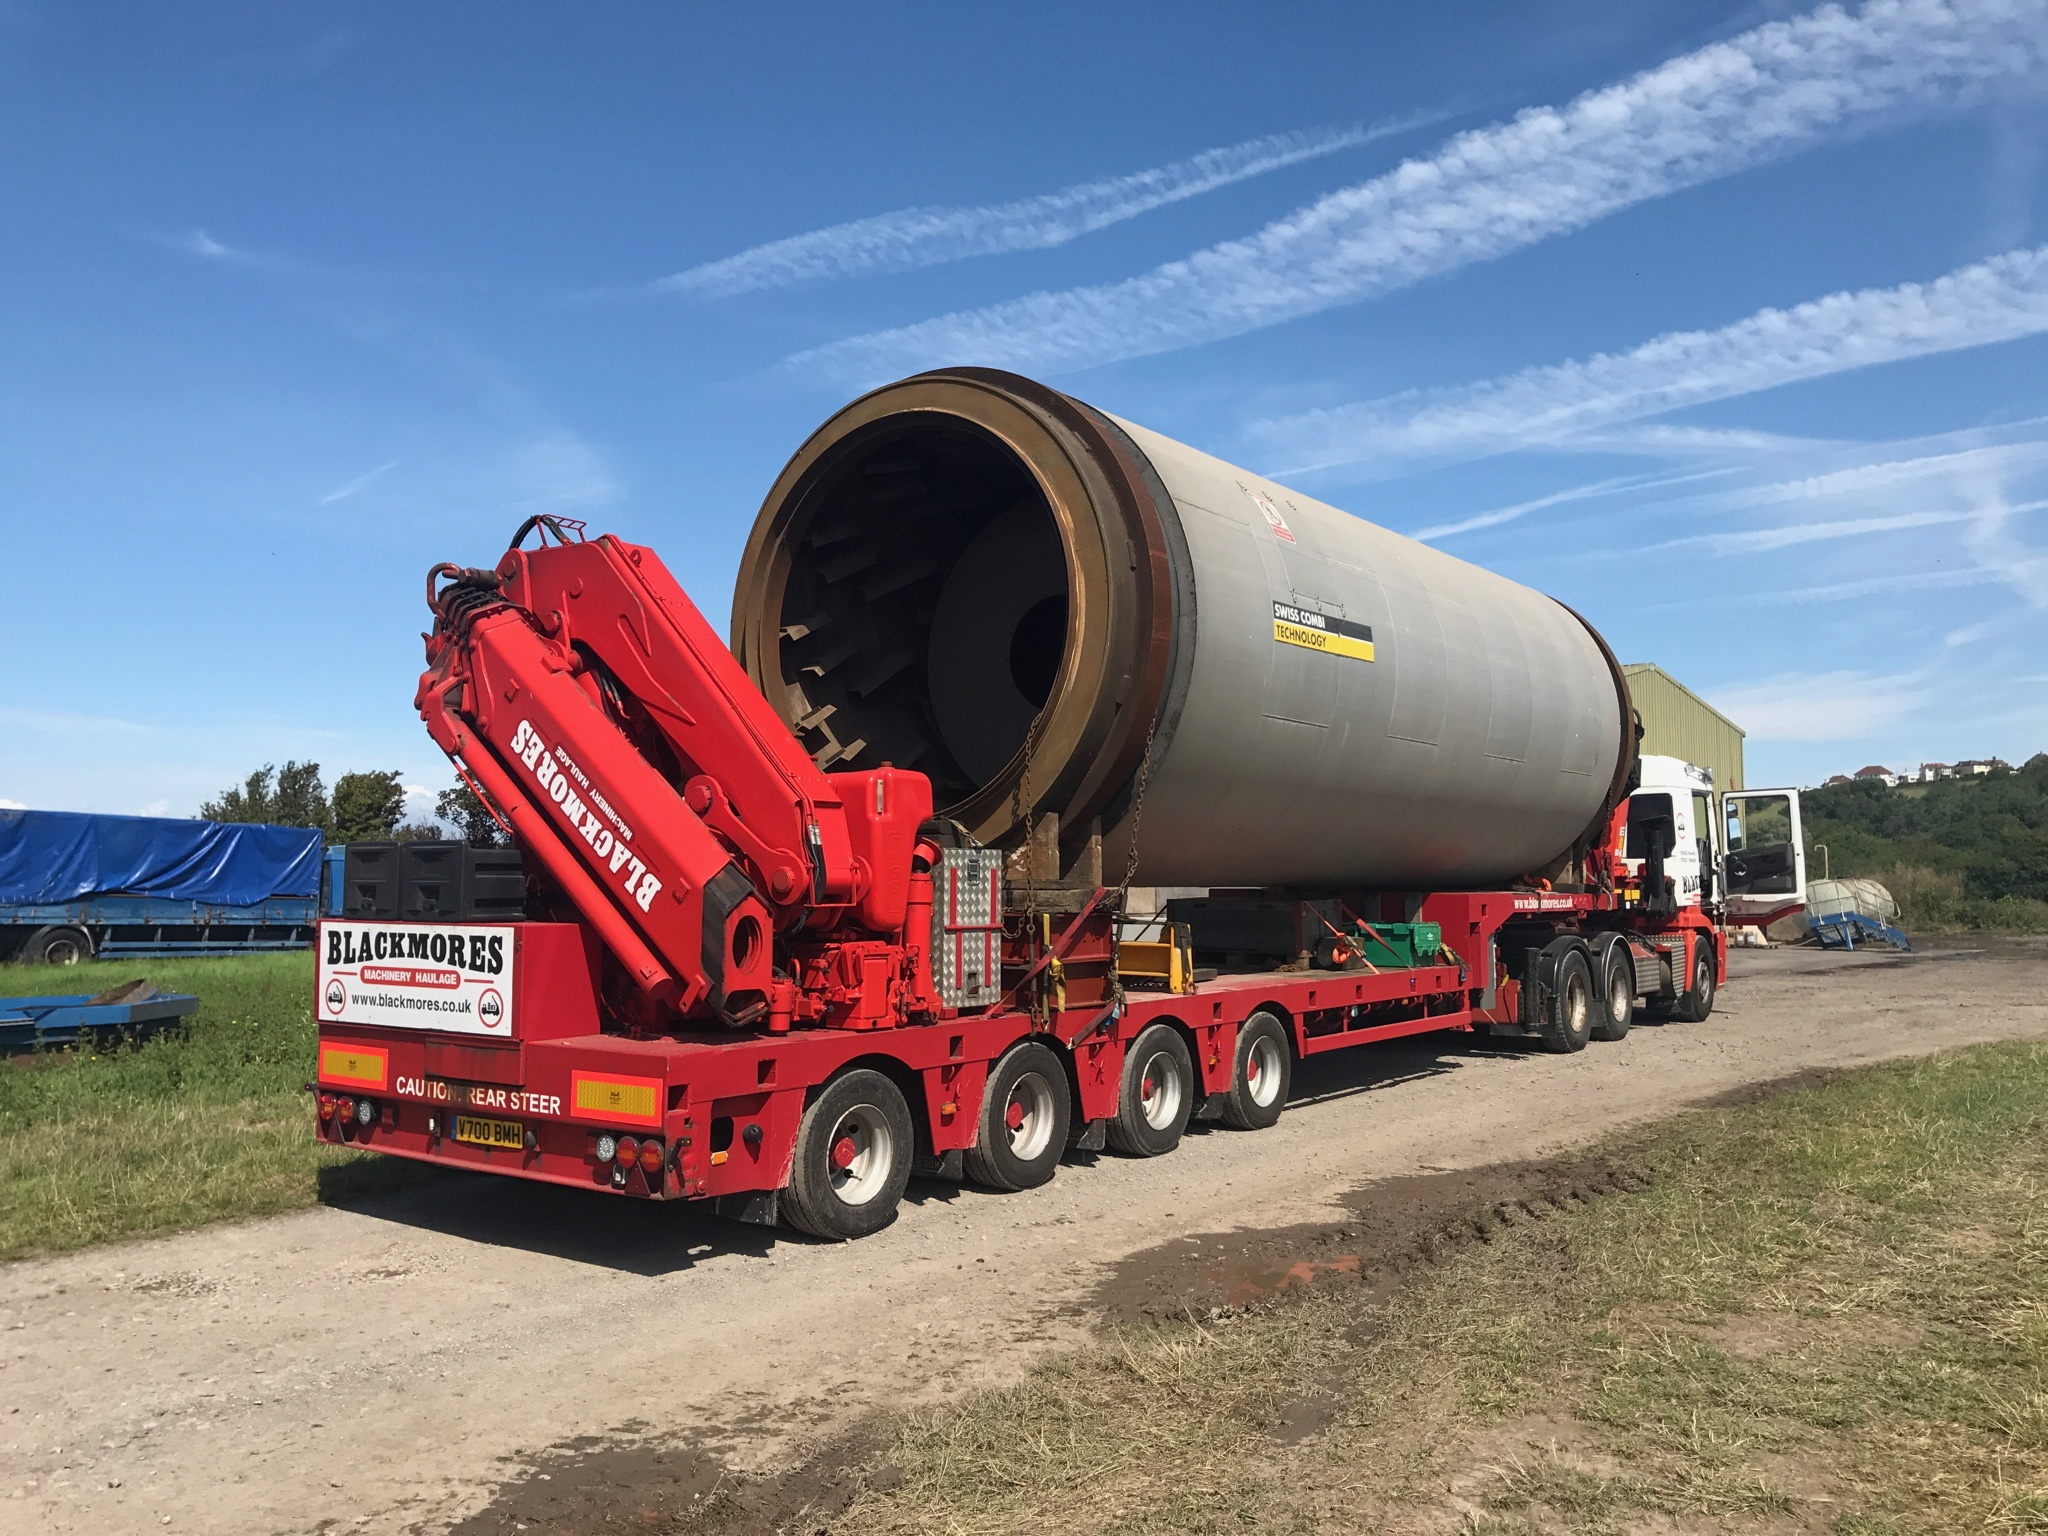 Truck Trailer Carrying A Large Load